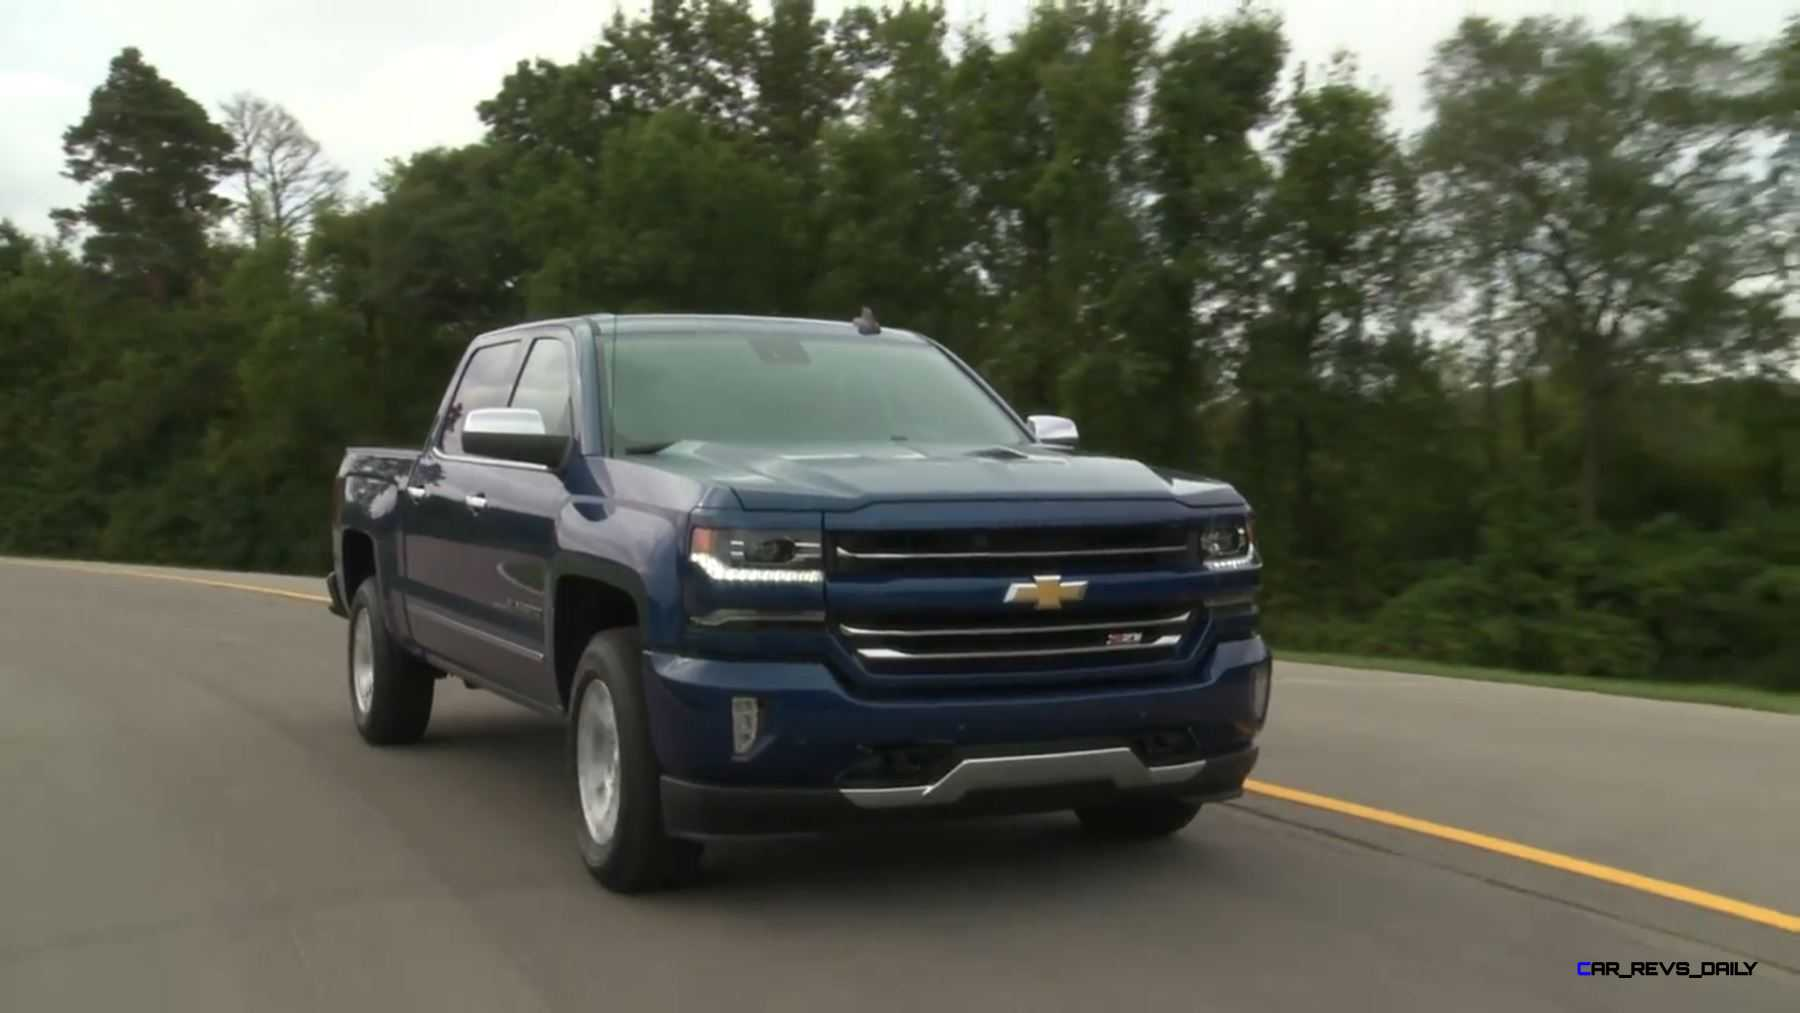 2016 chevrolet silverado ltz z71 25. Black Bedroom Furniture Sets. Home Design Ideas